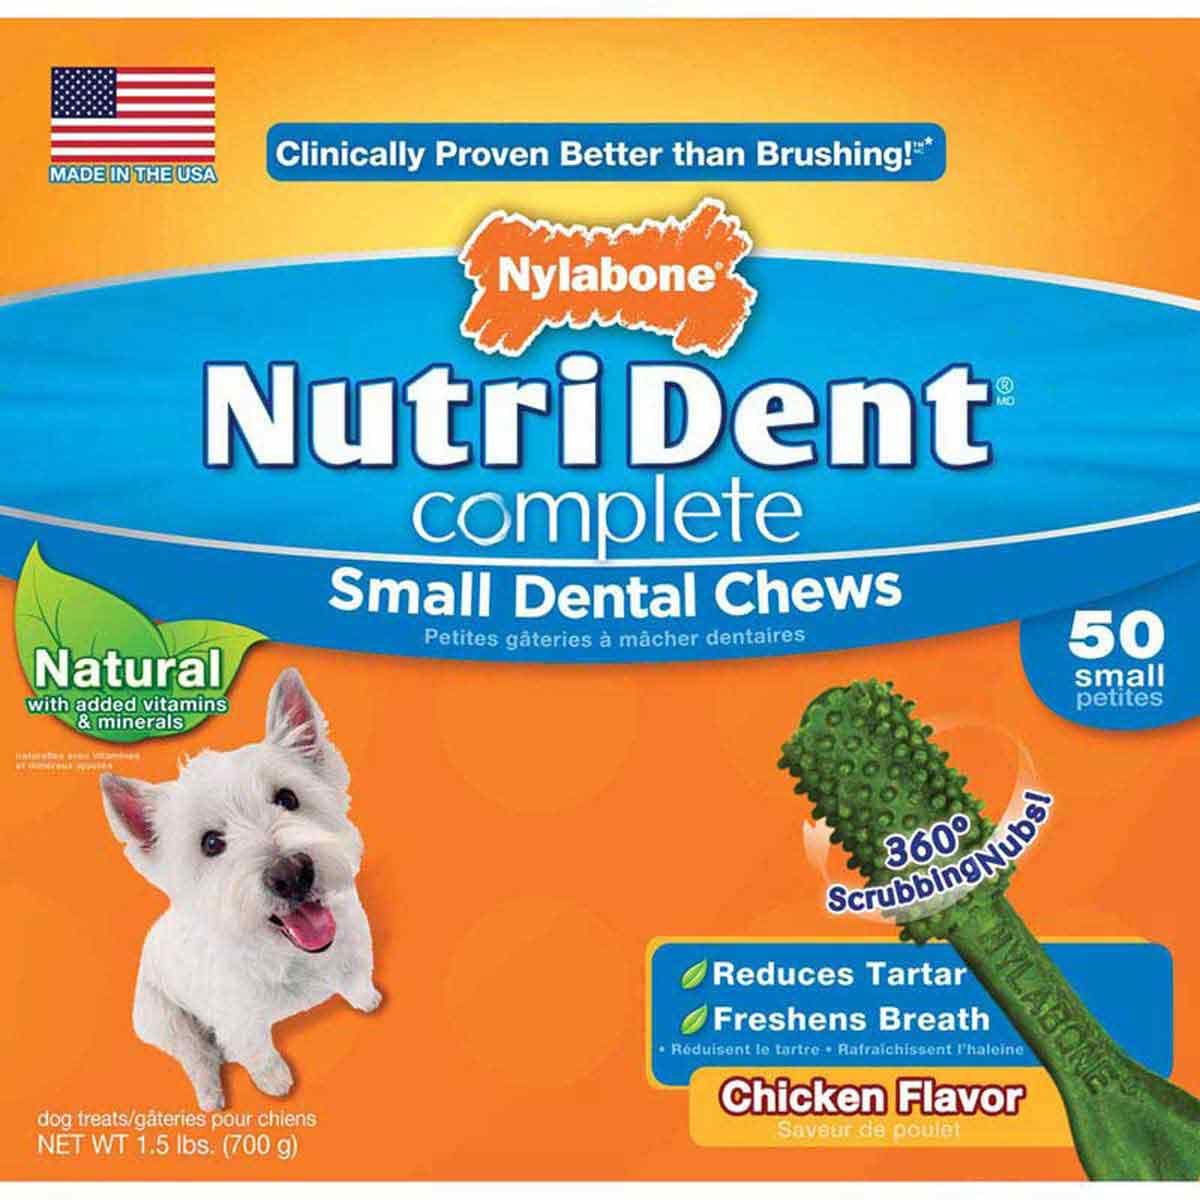 Nylabone Nutri Dent Complete Adult Chicken Small 50 Count - Dog Dental Chews